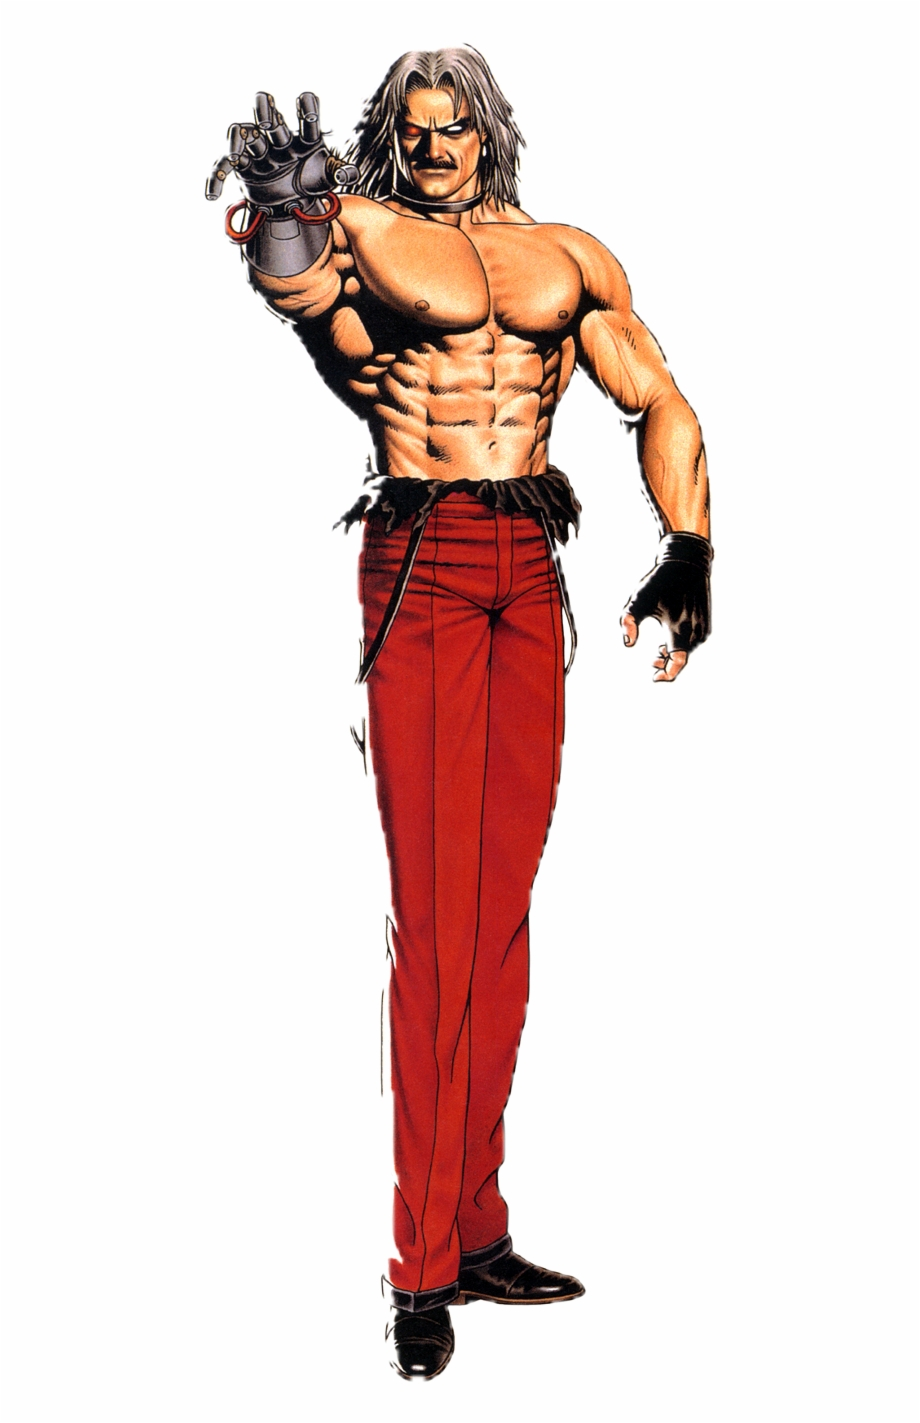 Rugal Rugal B Transparent Png Download 2271047 Vippng